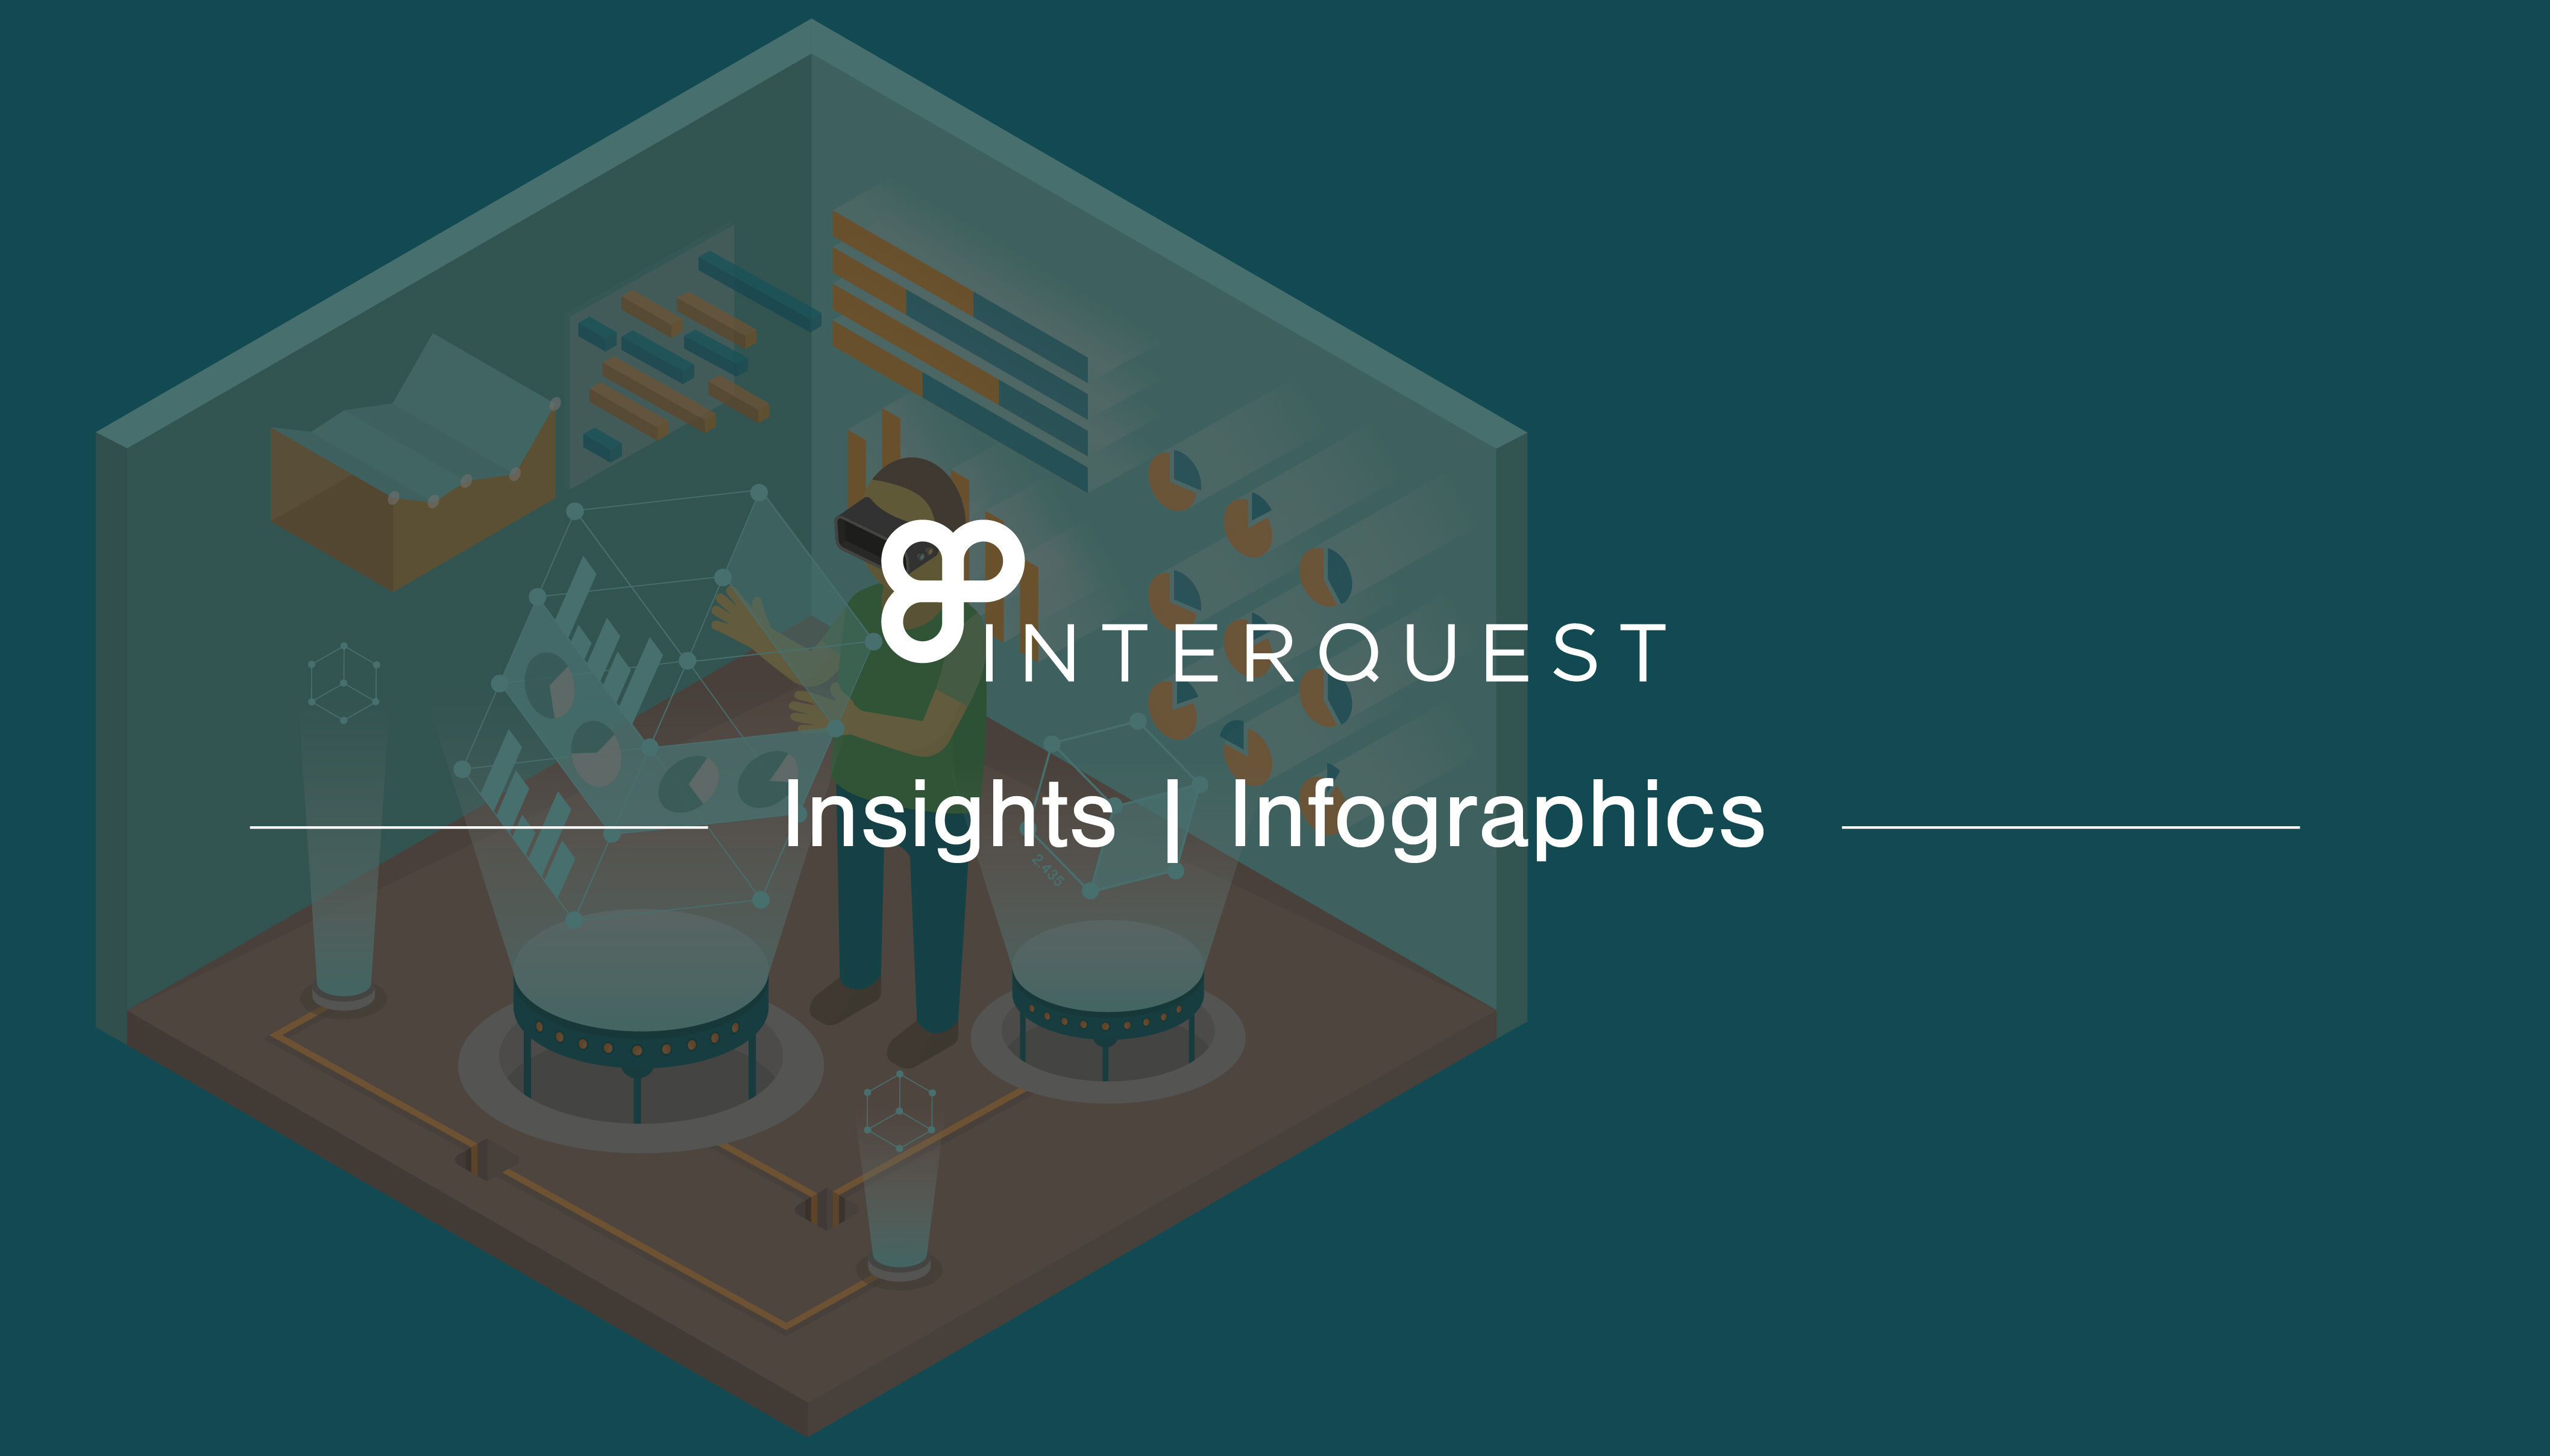 Inter Quest Insights Infographic Banner